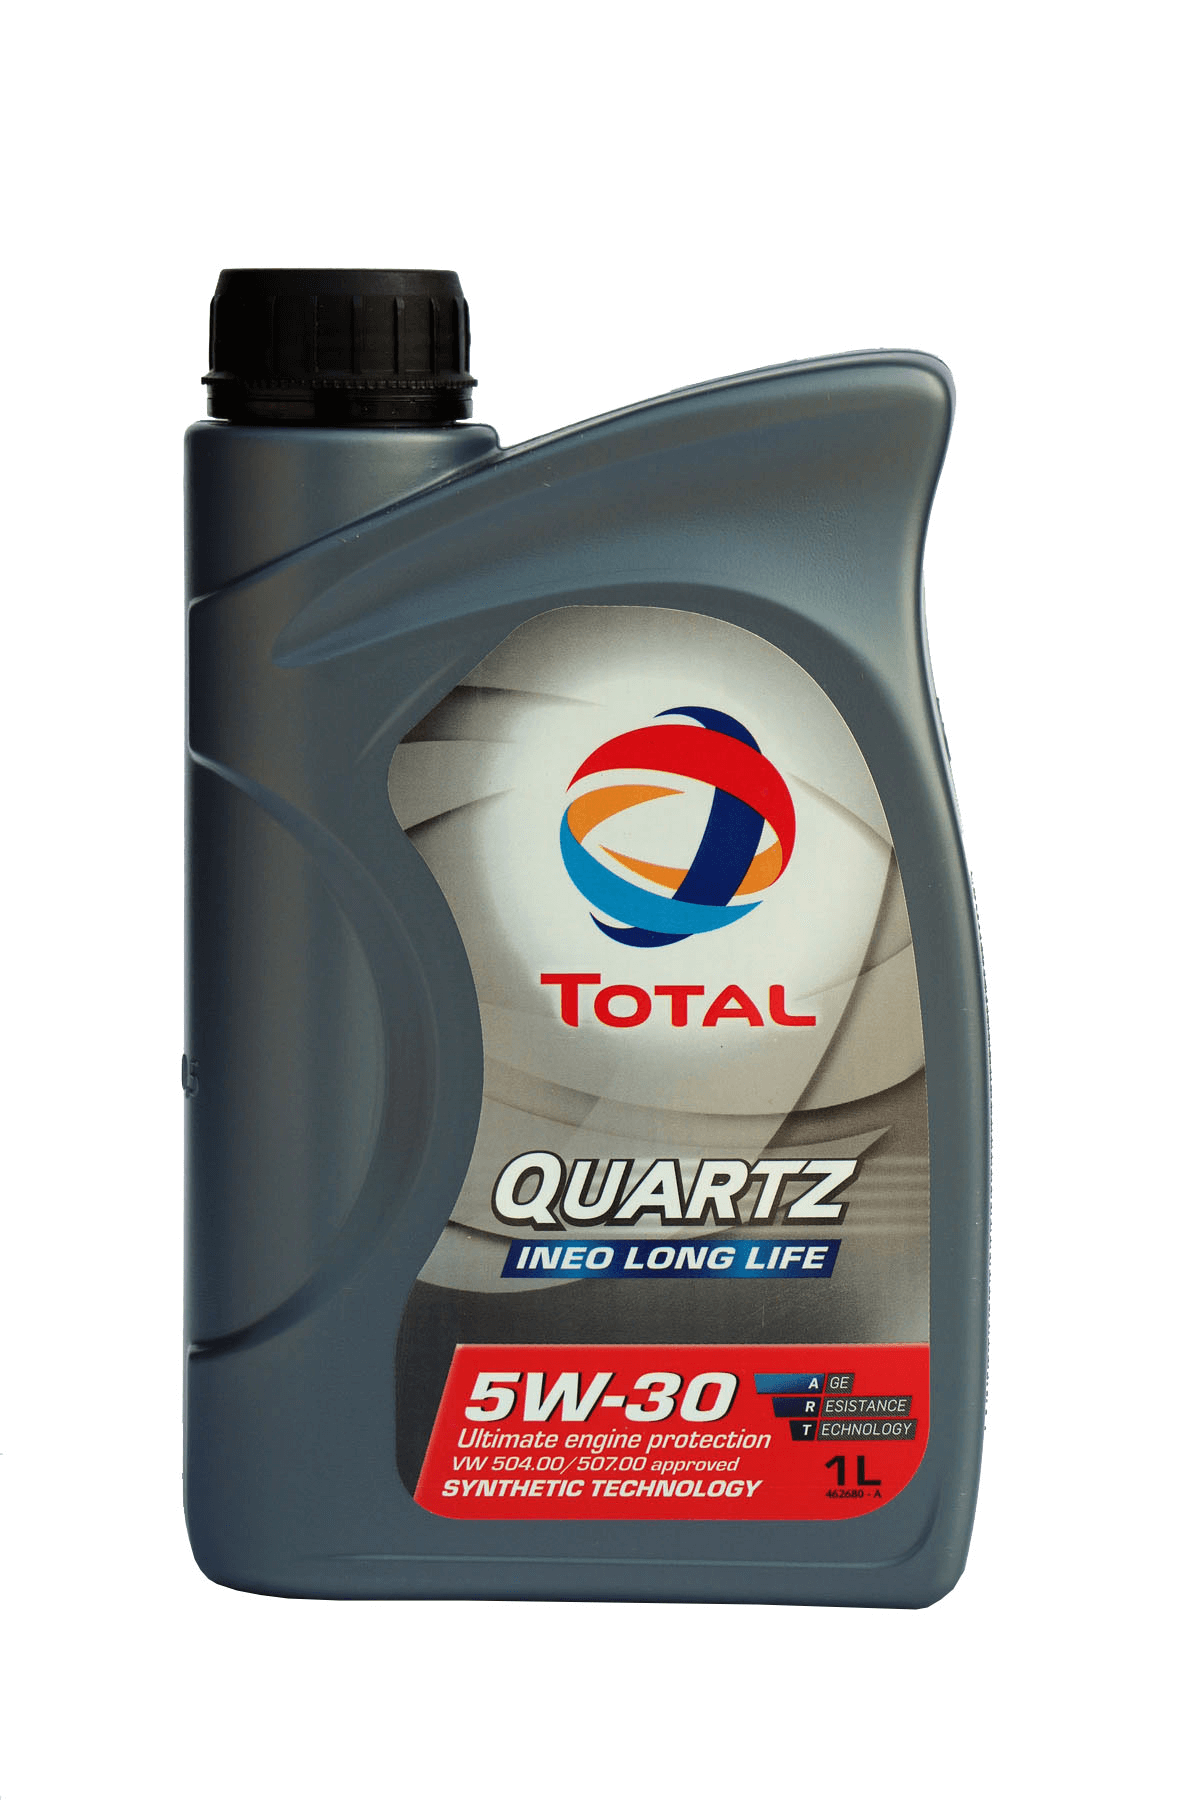 Total Quartz Ineo Long Life 5W-30 Motoröl, 1l